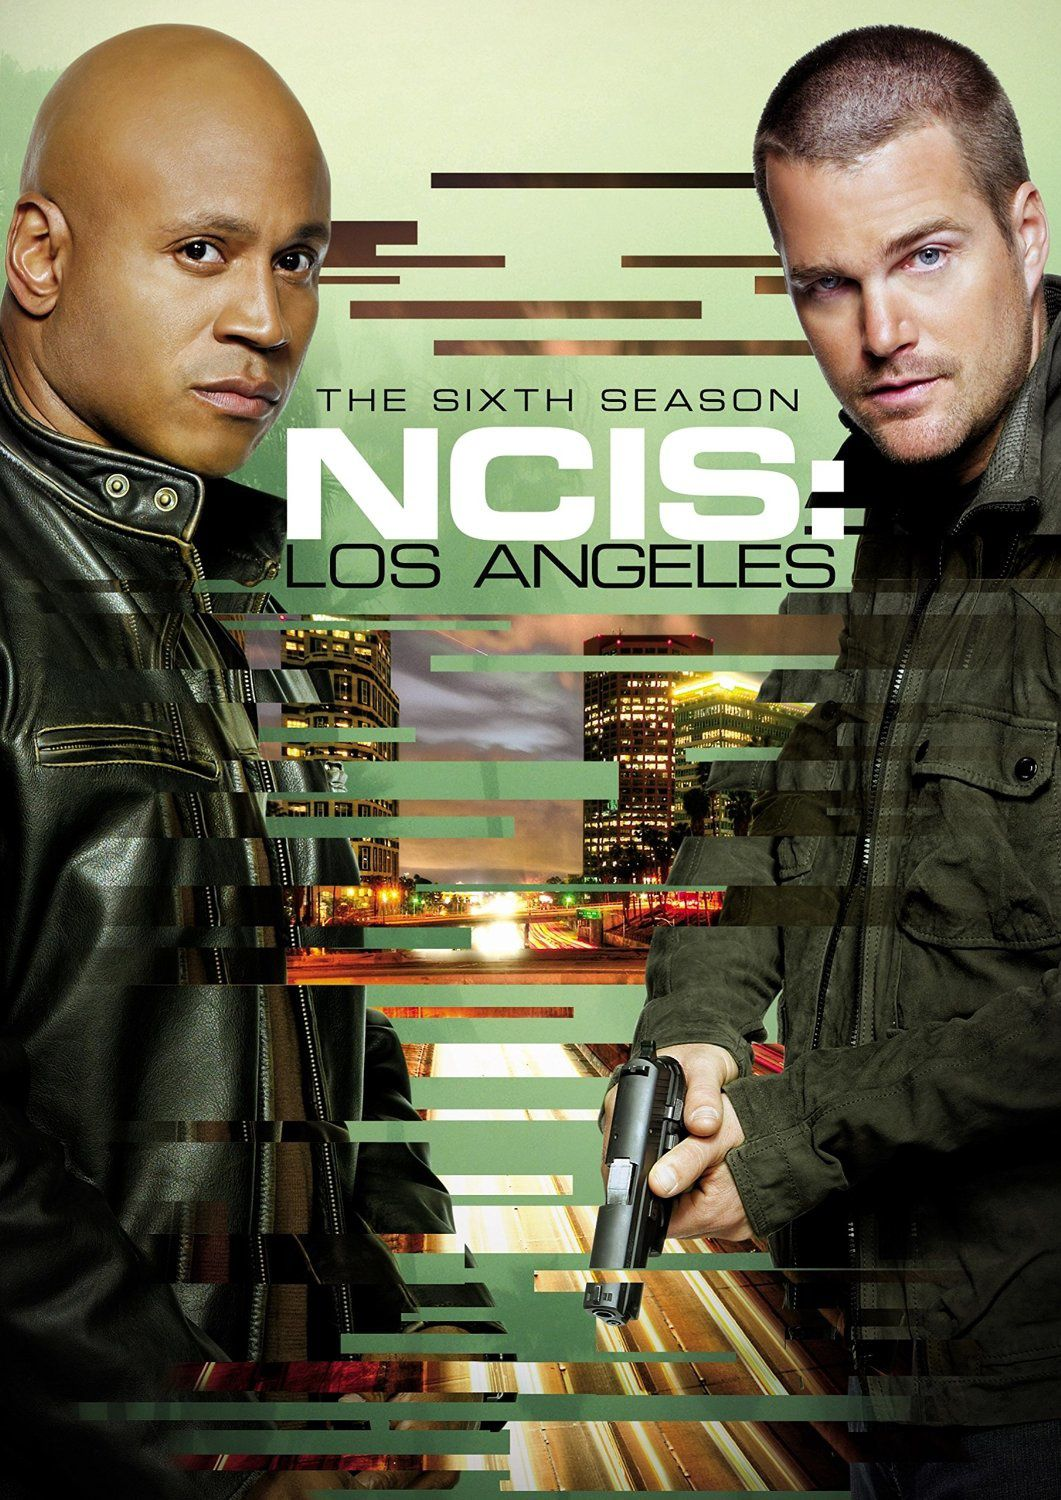 NCIS Los Angeles saison 6 en dvd